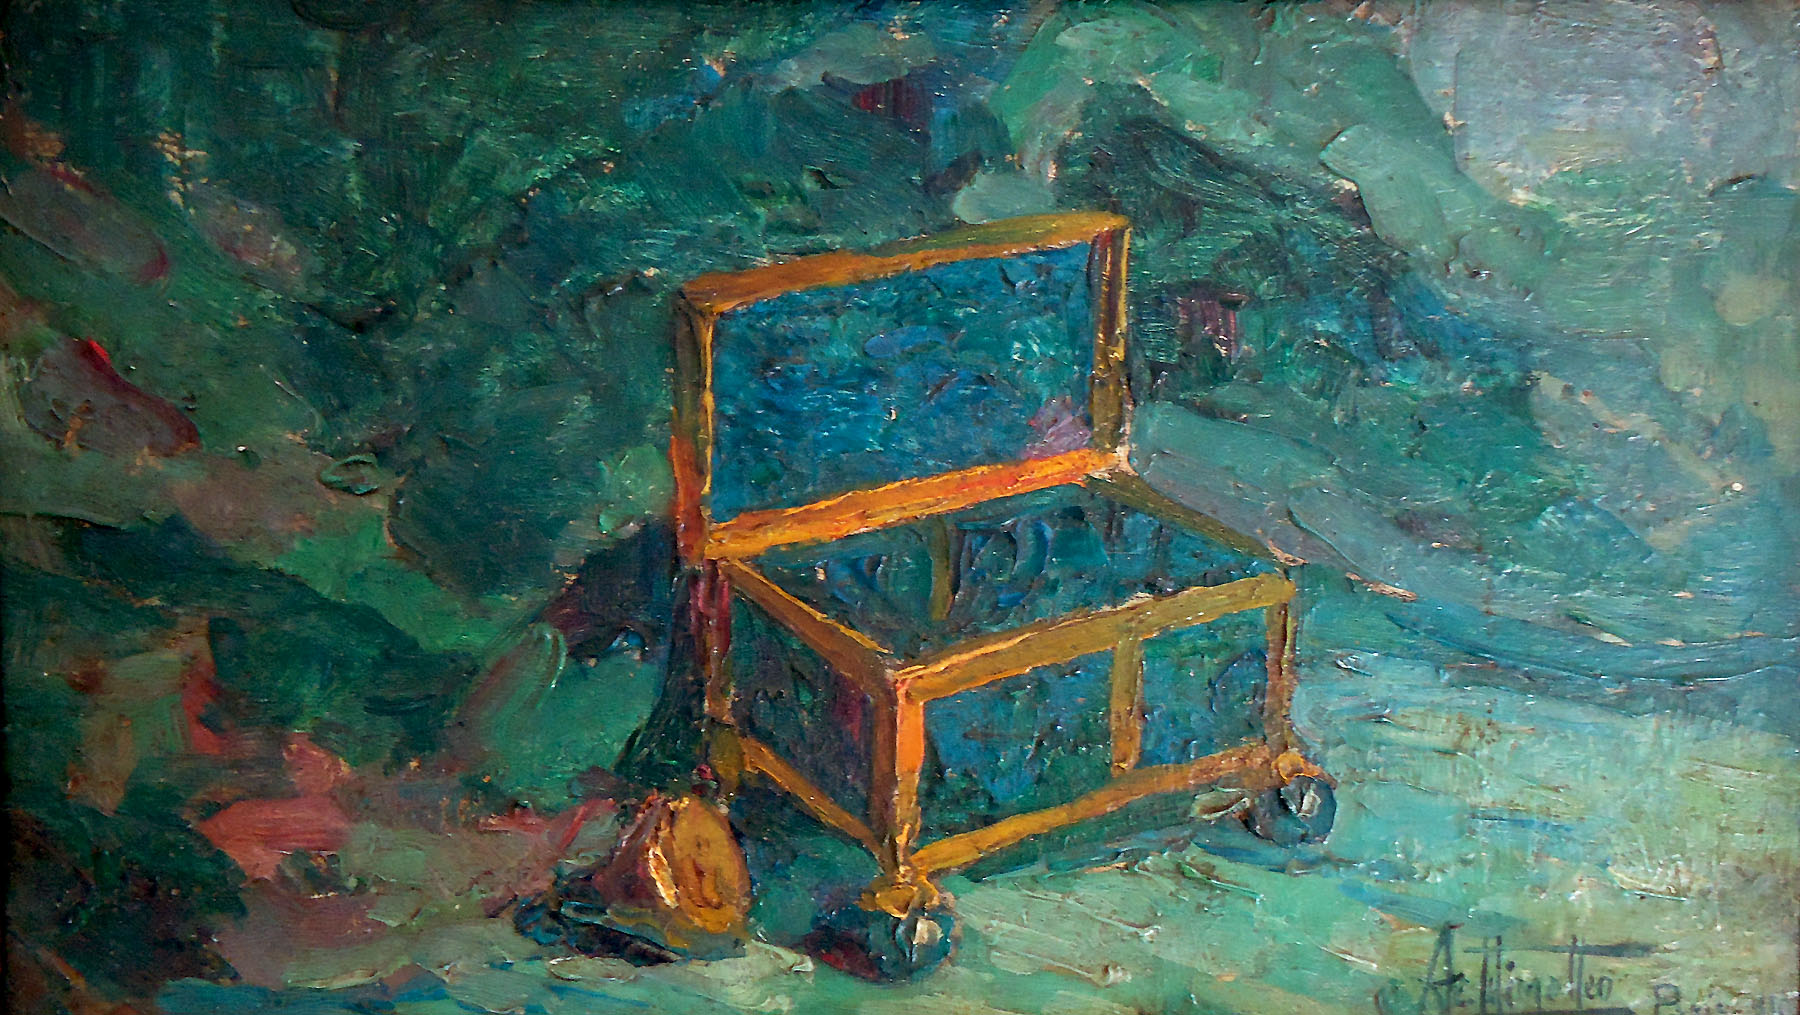 File:Arthur Timotheo da Costa, Blue box with golden ring, 15,7 x 23 ...